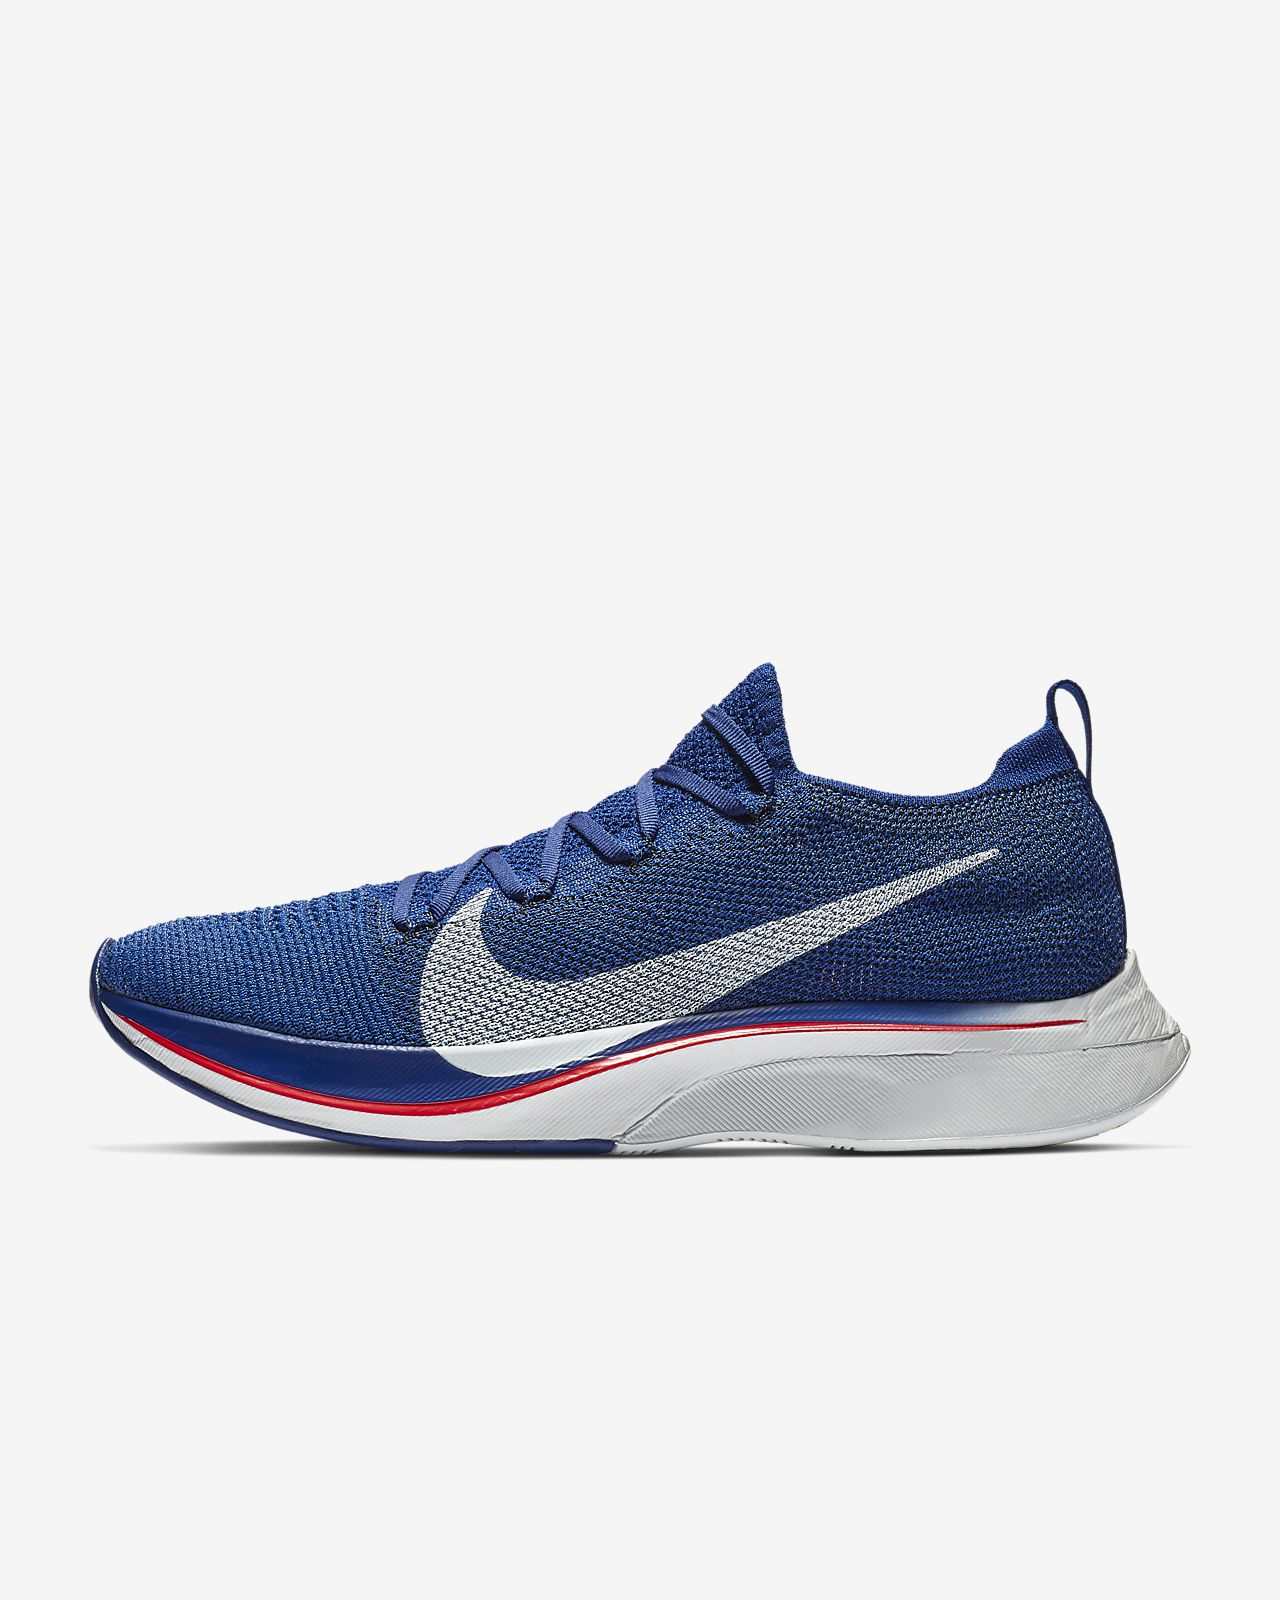 lowest price c5e23 61112 Nike Vaporfly 4% Flyknit